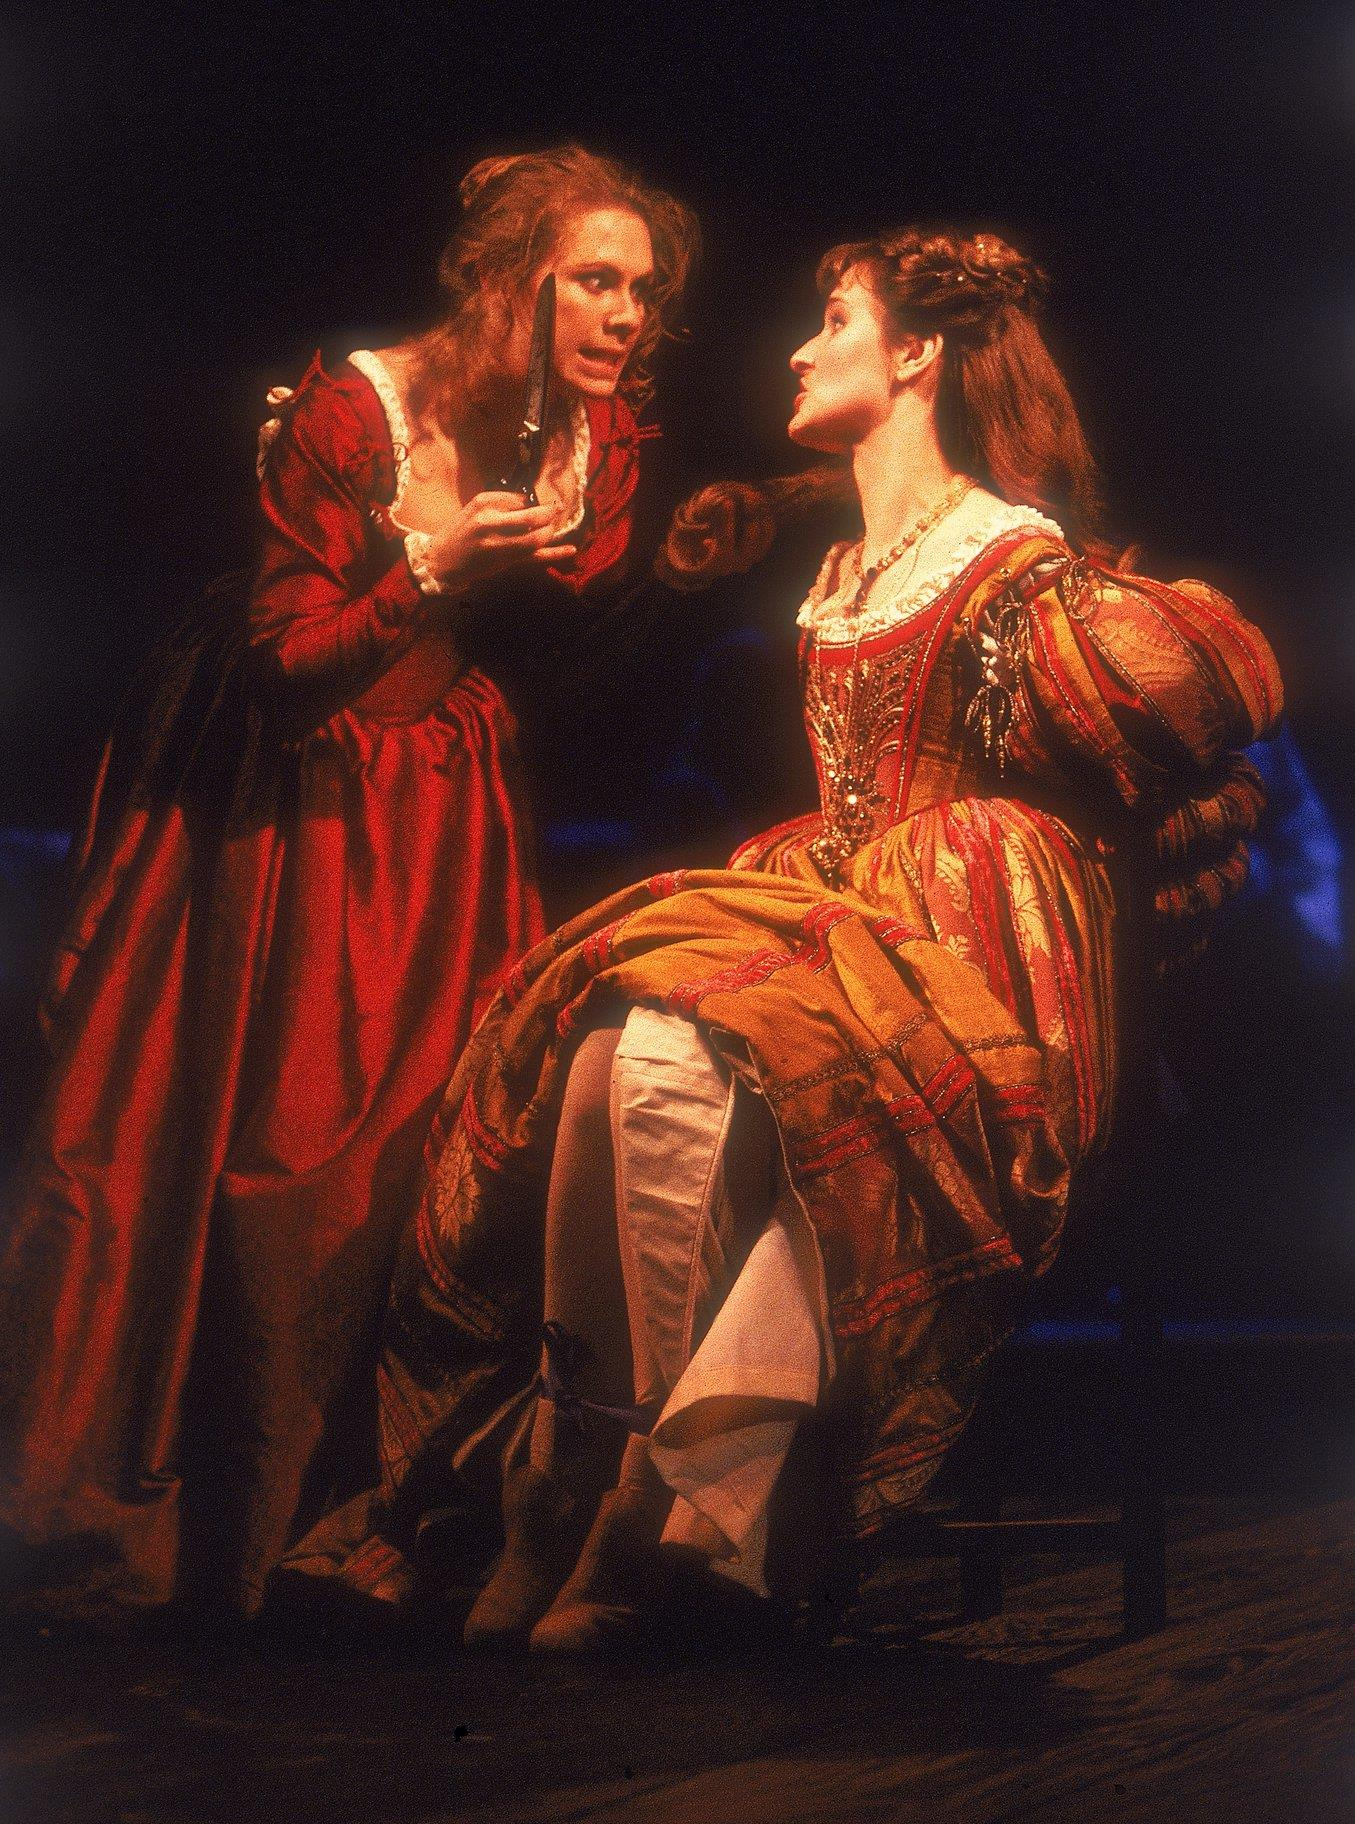 the relationship between katherine and bianca in shakespeares the taming of the shrew Start studying taming of the shrew what is the relationship between litio from mantua who is actually hortensio in disguise to tutor katherine and bianca.